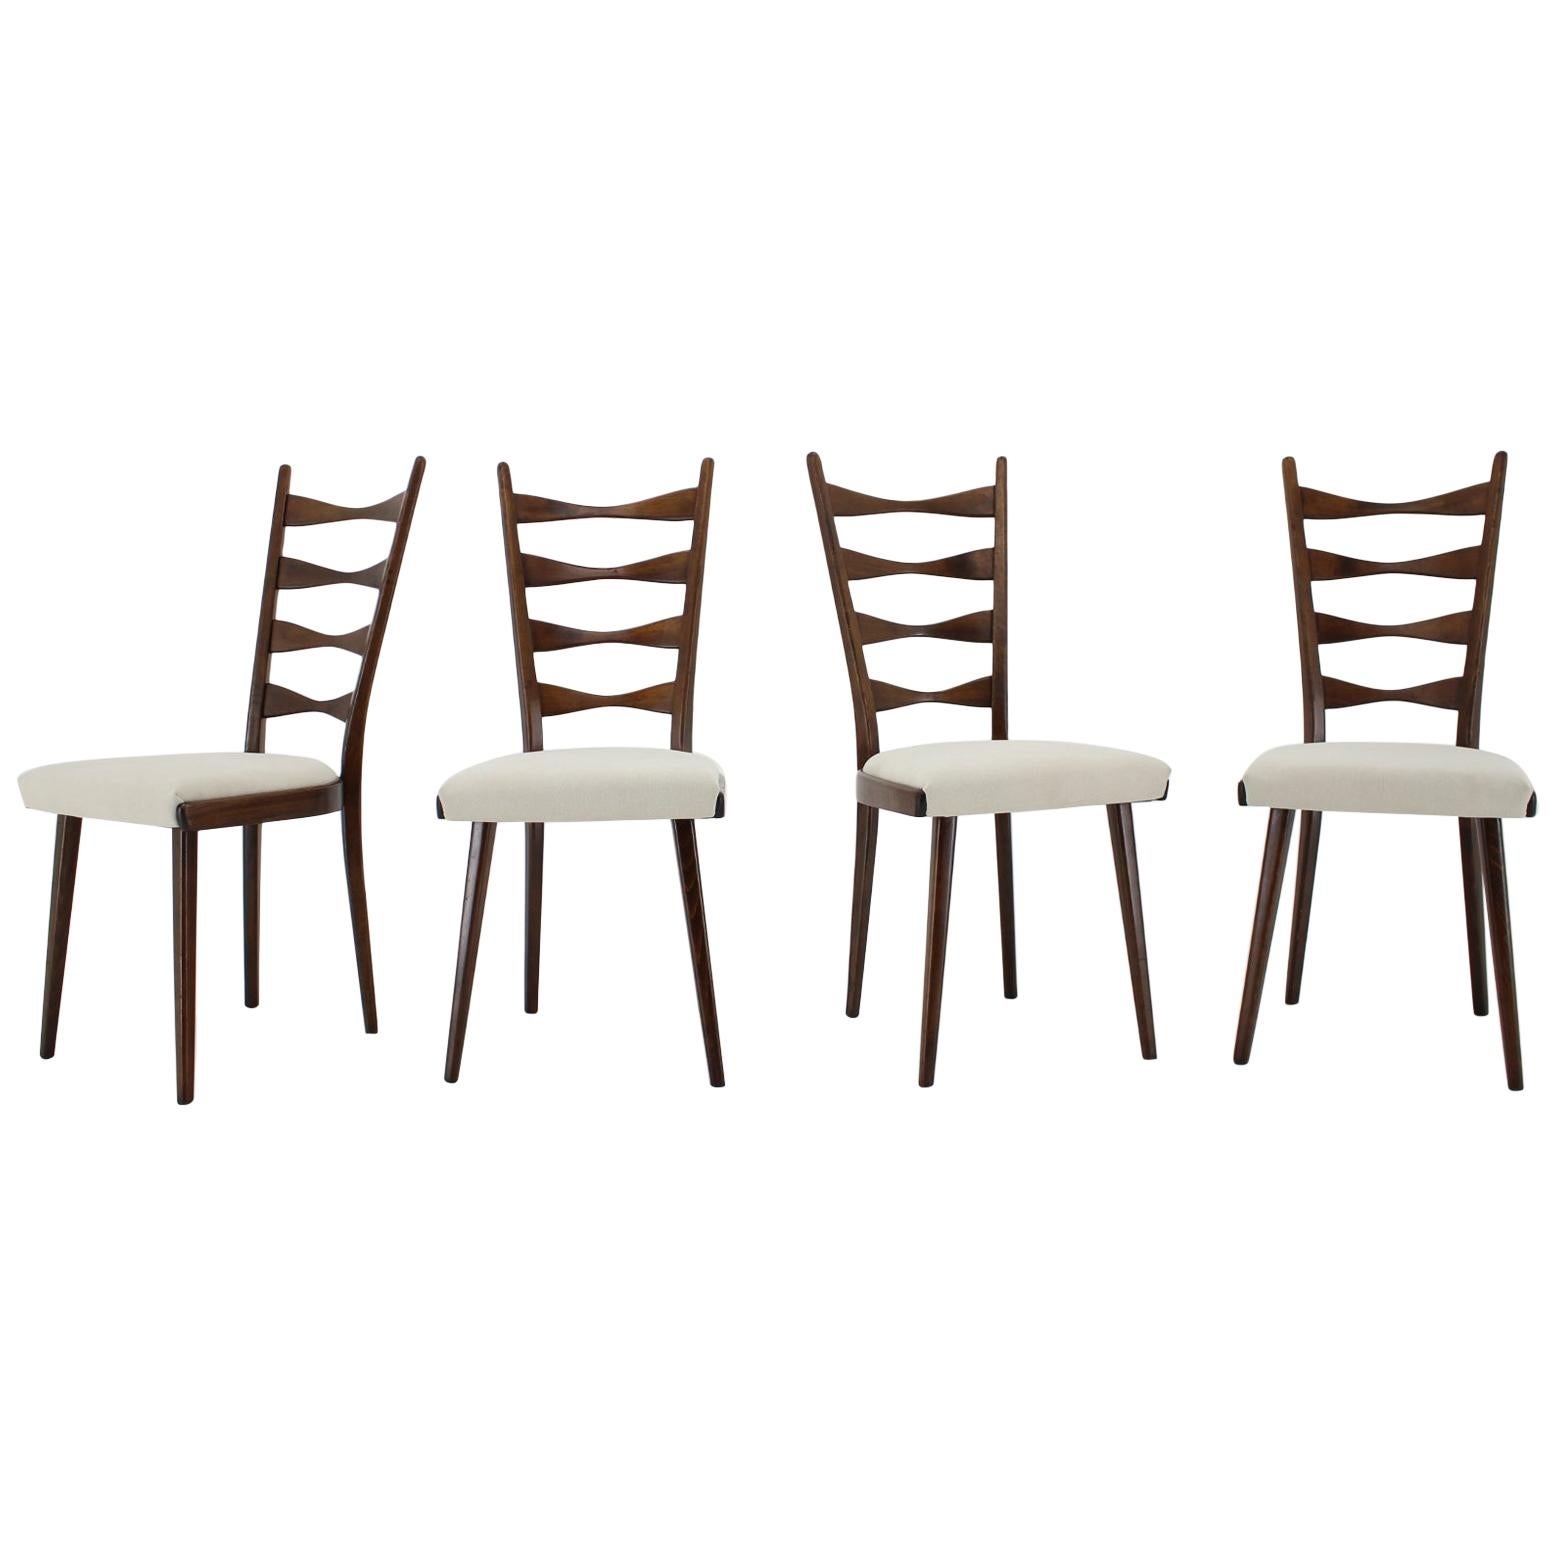 1960s Set of Four Beech Dining Chairs, Czechoslovakia